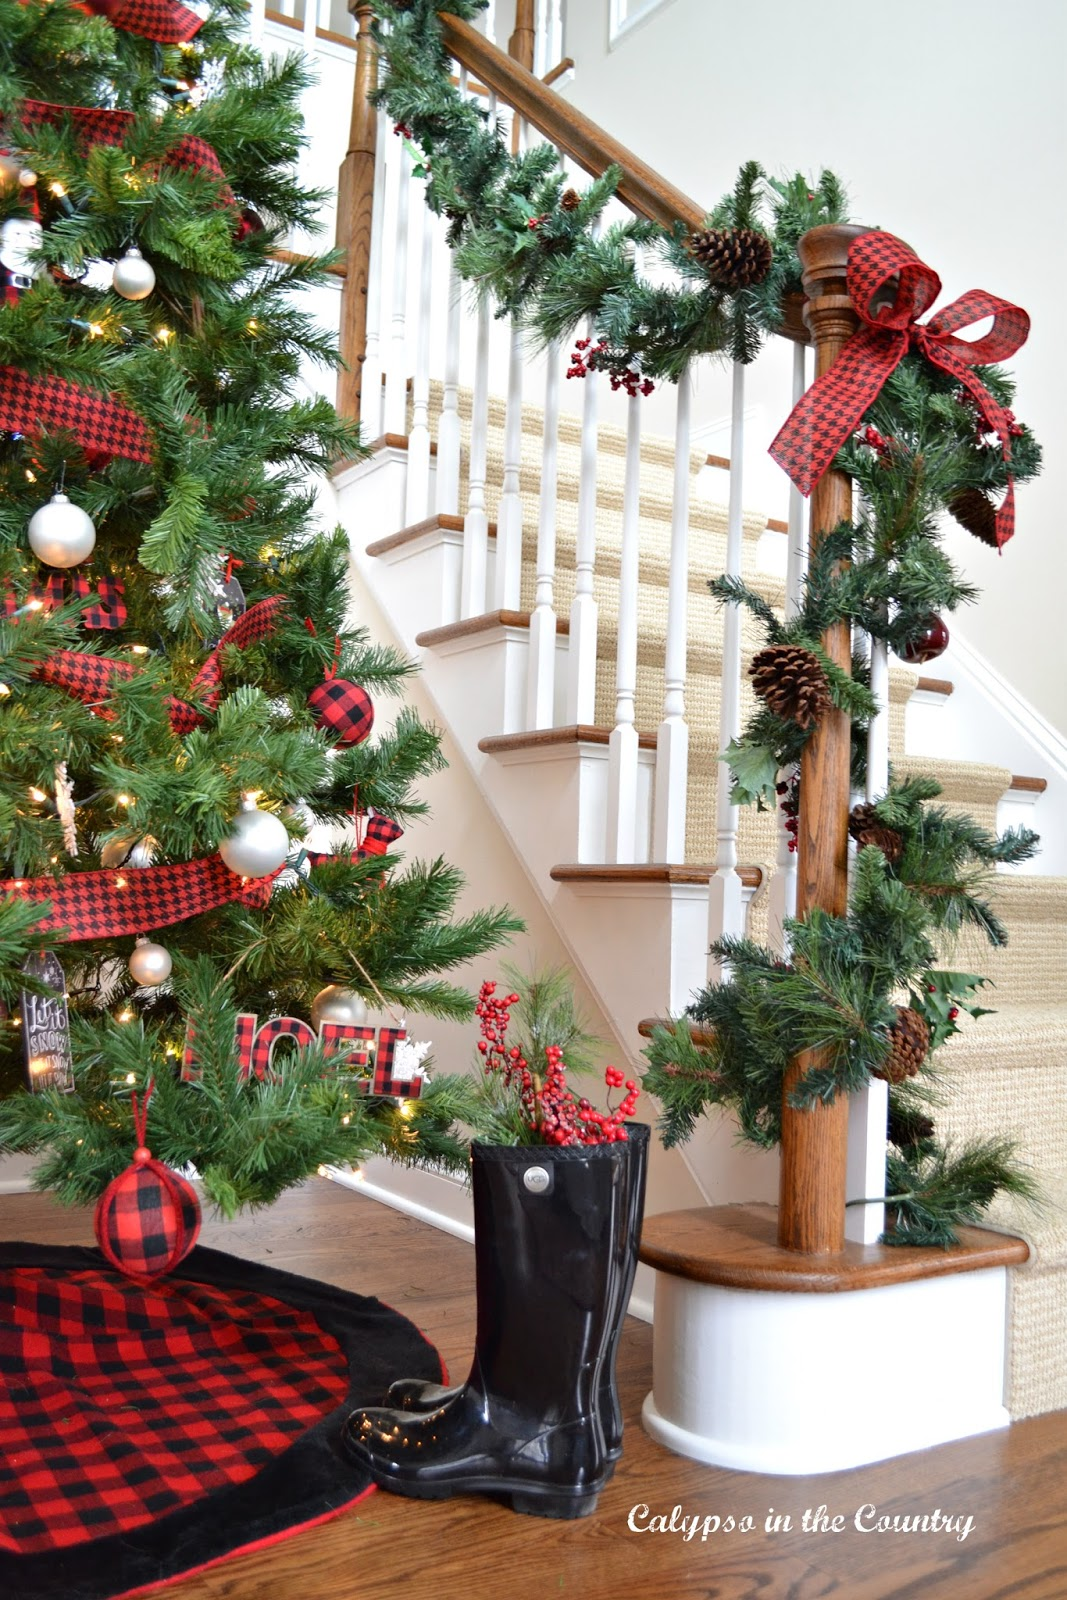 Christmas House Tour and 10 Most Popular Posts of the Year